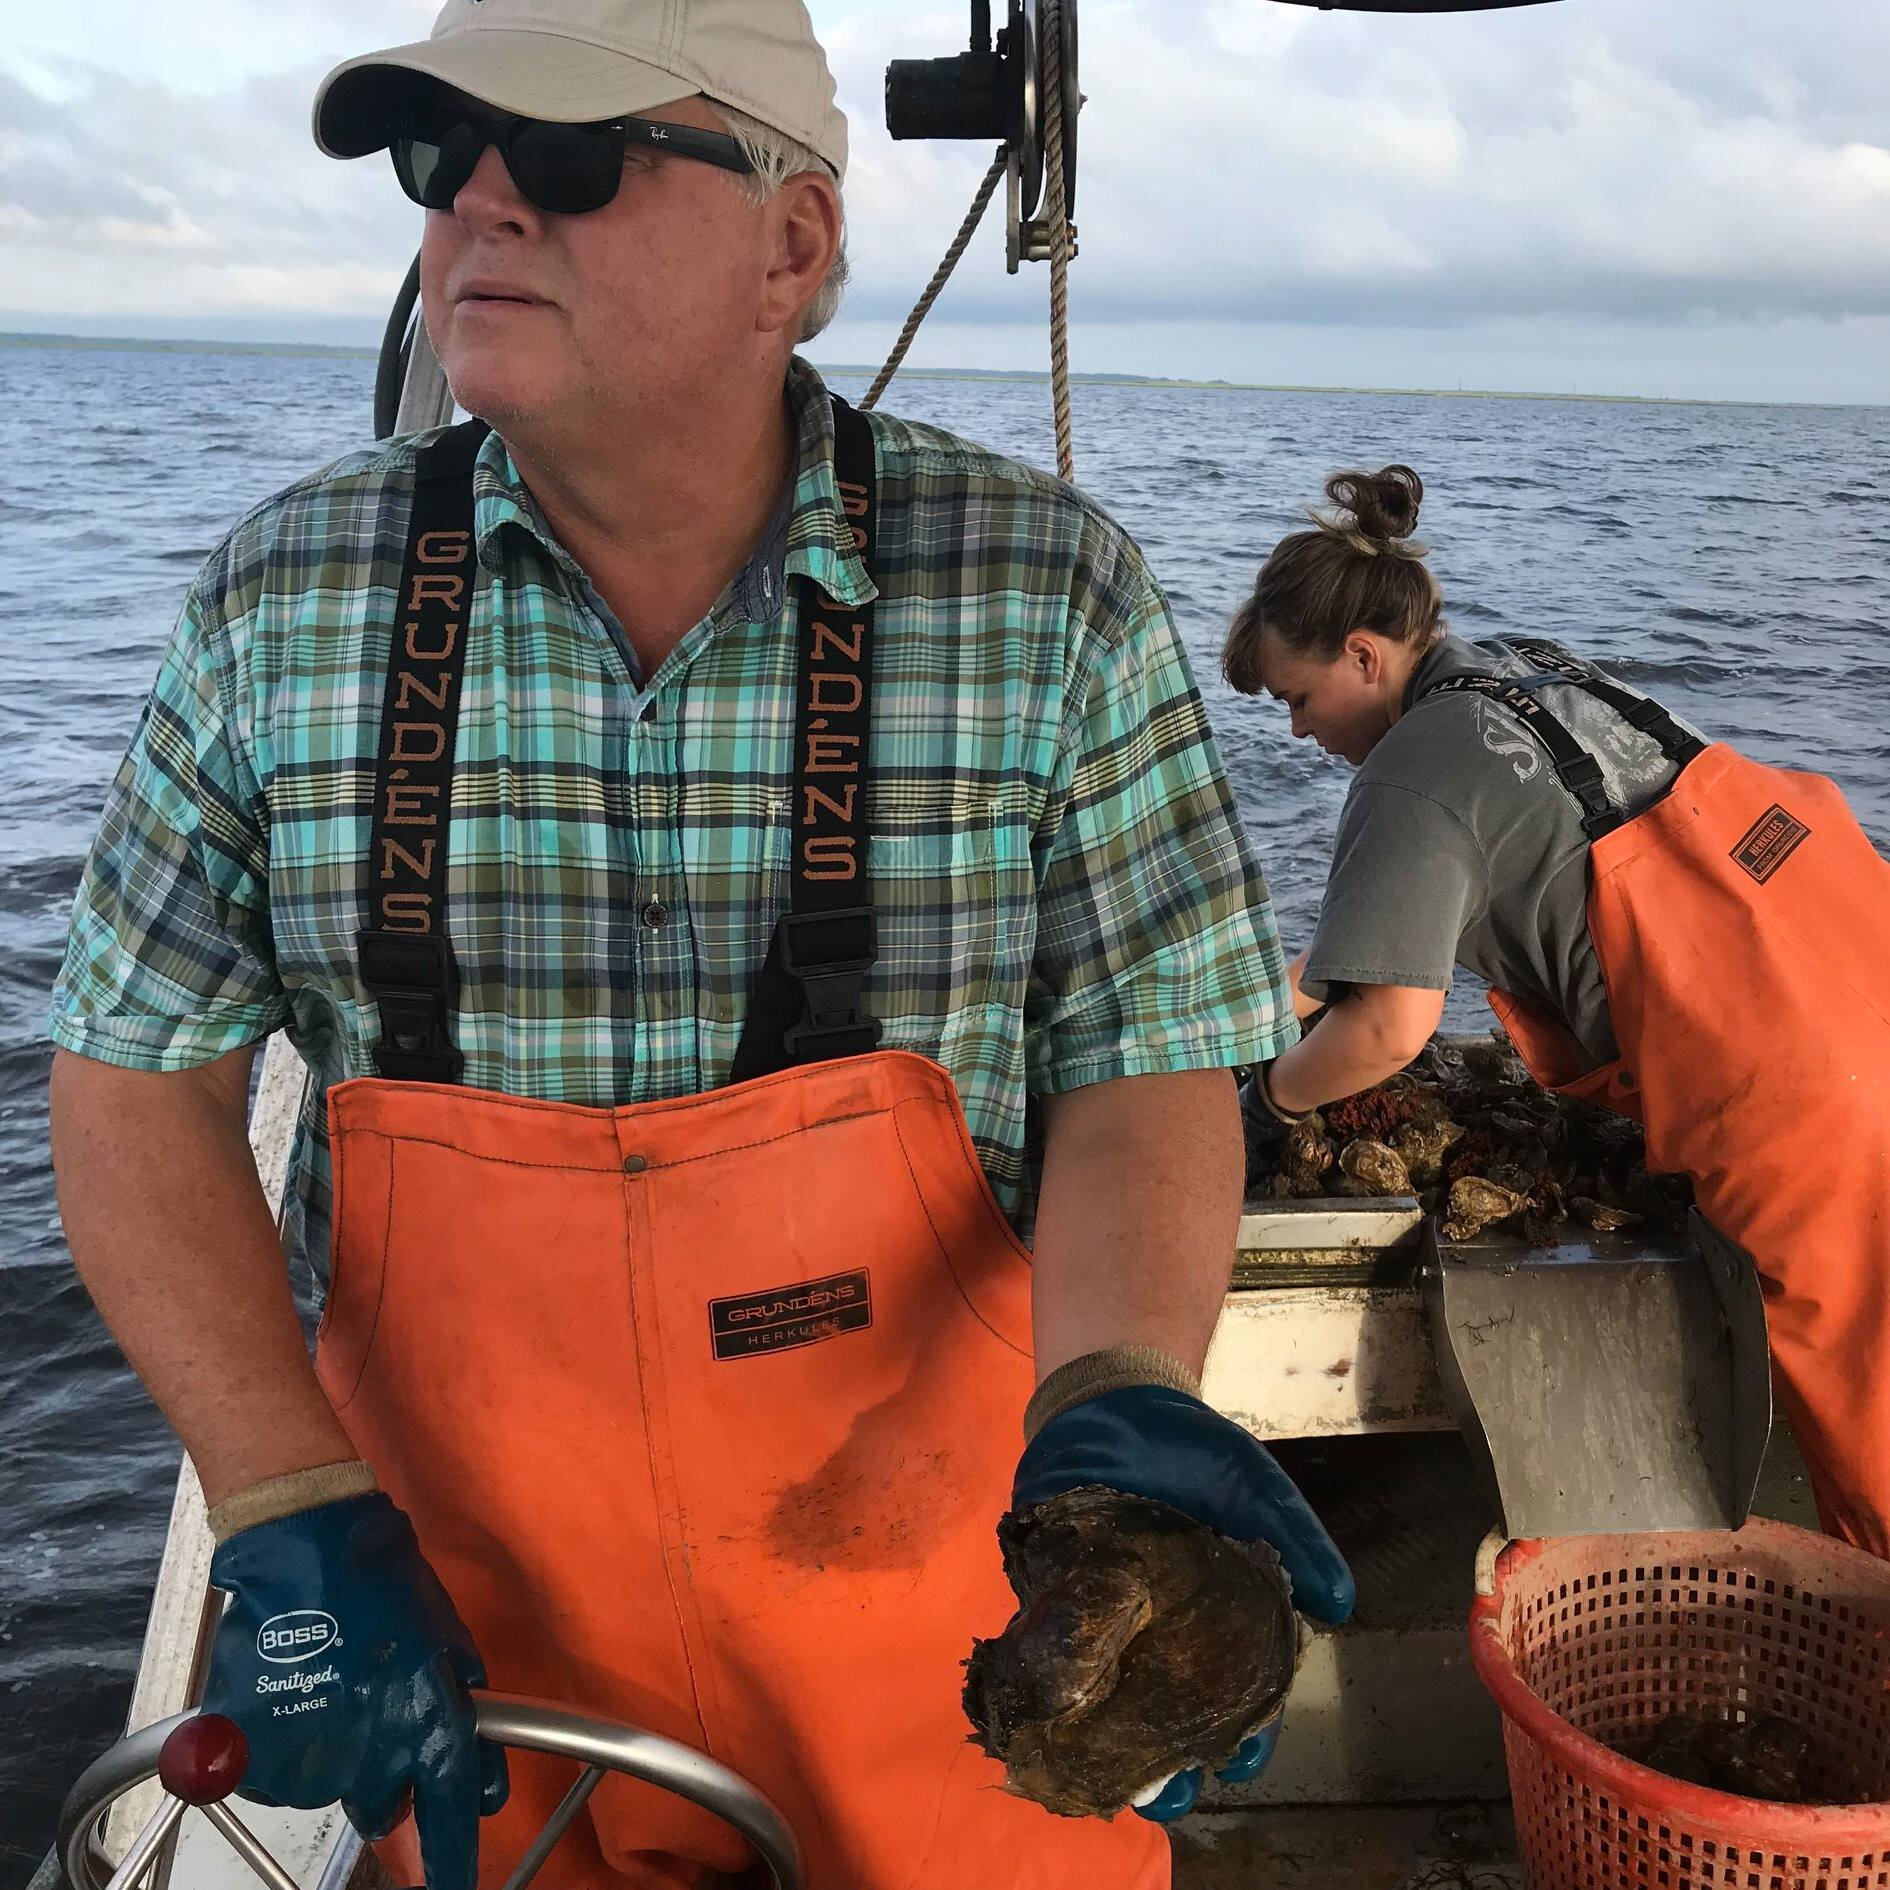 "John J. Maxwell   Working on the bay since he was 7 years old, John took the helm at Maxwell Shellfish in 1981 at 24 years of age. His work on the bay took him from Oysters to Clams and back again. He was co-founder and first president of the New Jersey Shellfisheries Association and currently serves as Chairman of the Atlantic Coast Shellfish Council and on the Marine Fisheries Council.  In 2014 he received the Hurley Conklin Award for a lifetime of achievement in the Barnegat Bay tradition.    Nicknames:  DAD!   Specialties Include:  Being the Boss & Bossing everyone around   Famous Quote:  ""This is the life you've chosen"" or ""Don't worry about me, I've landed an airplane"""